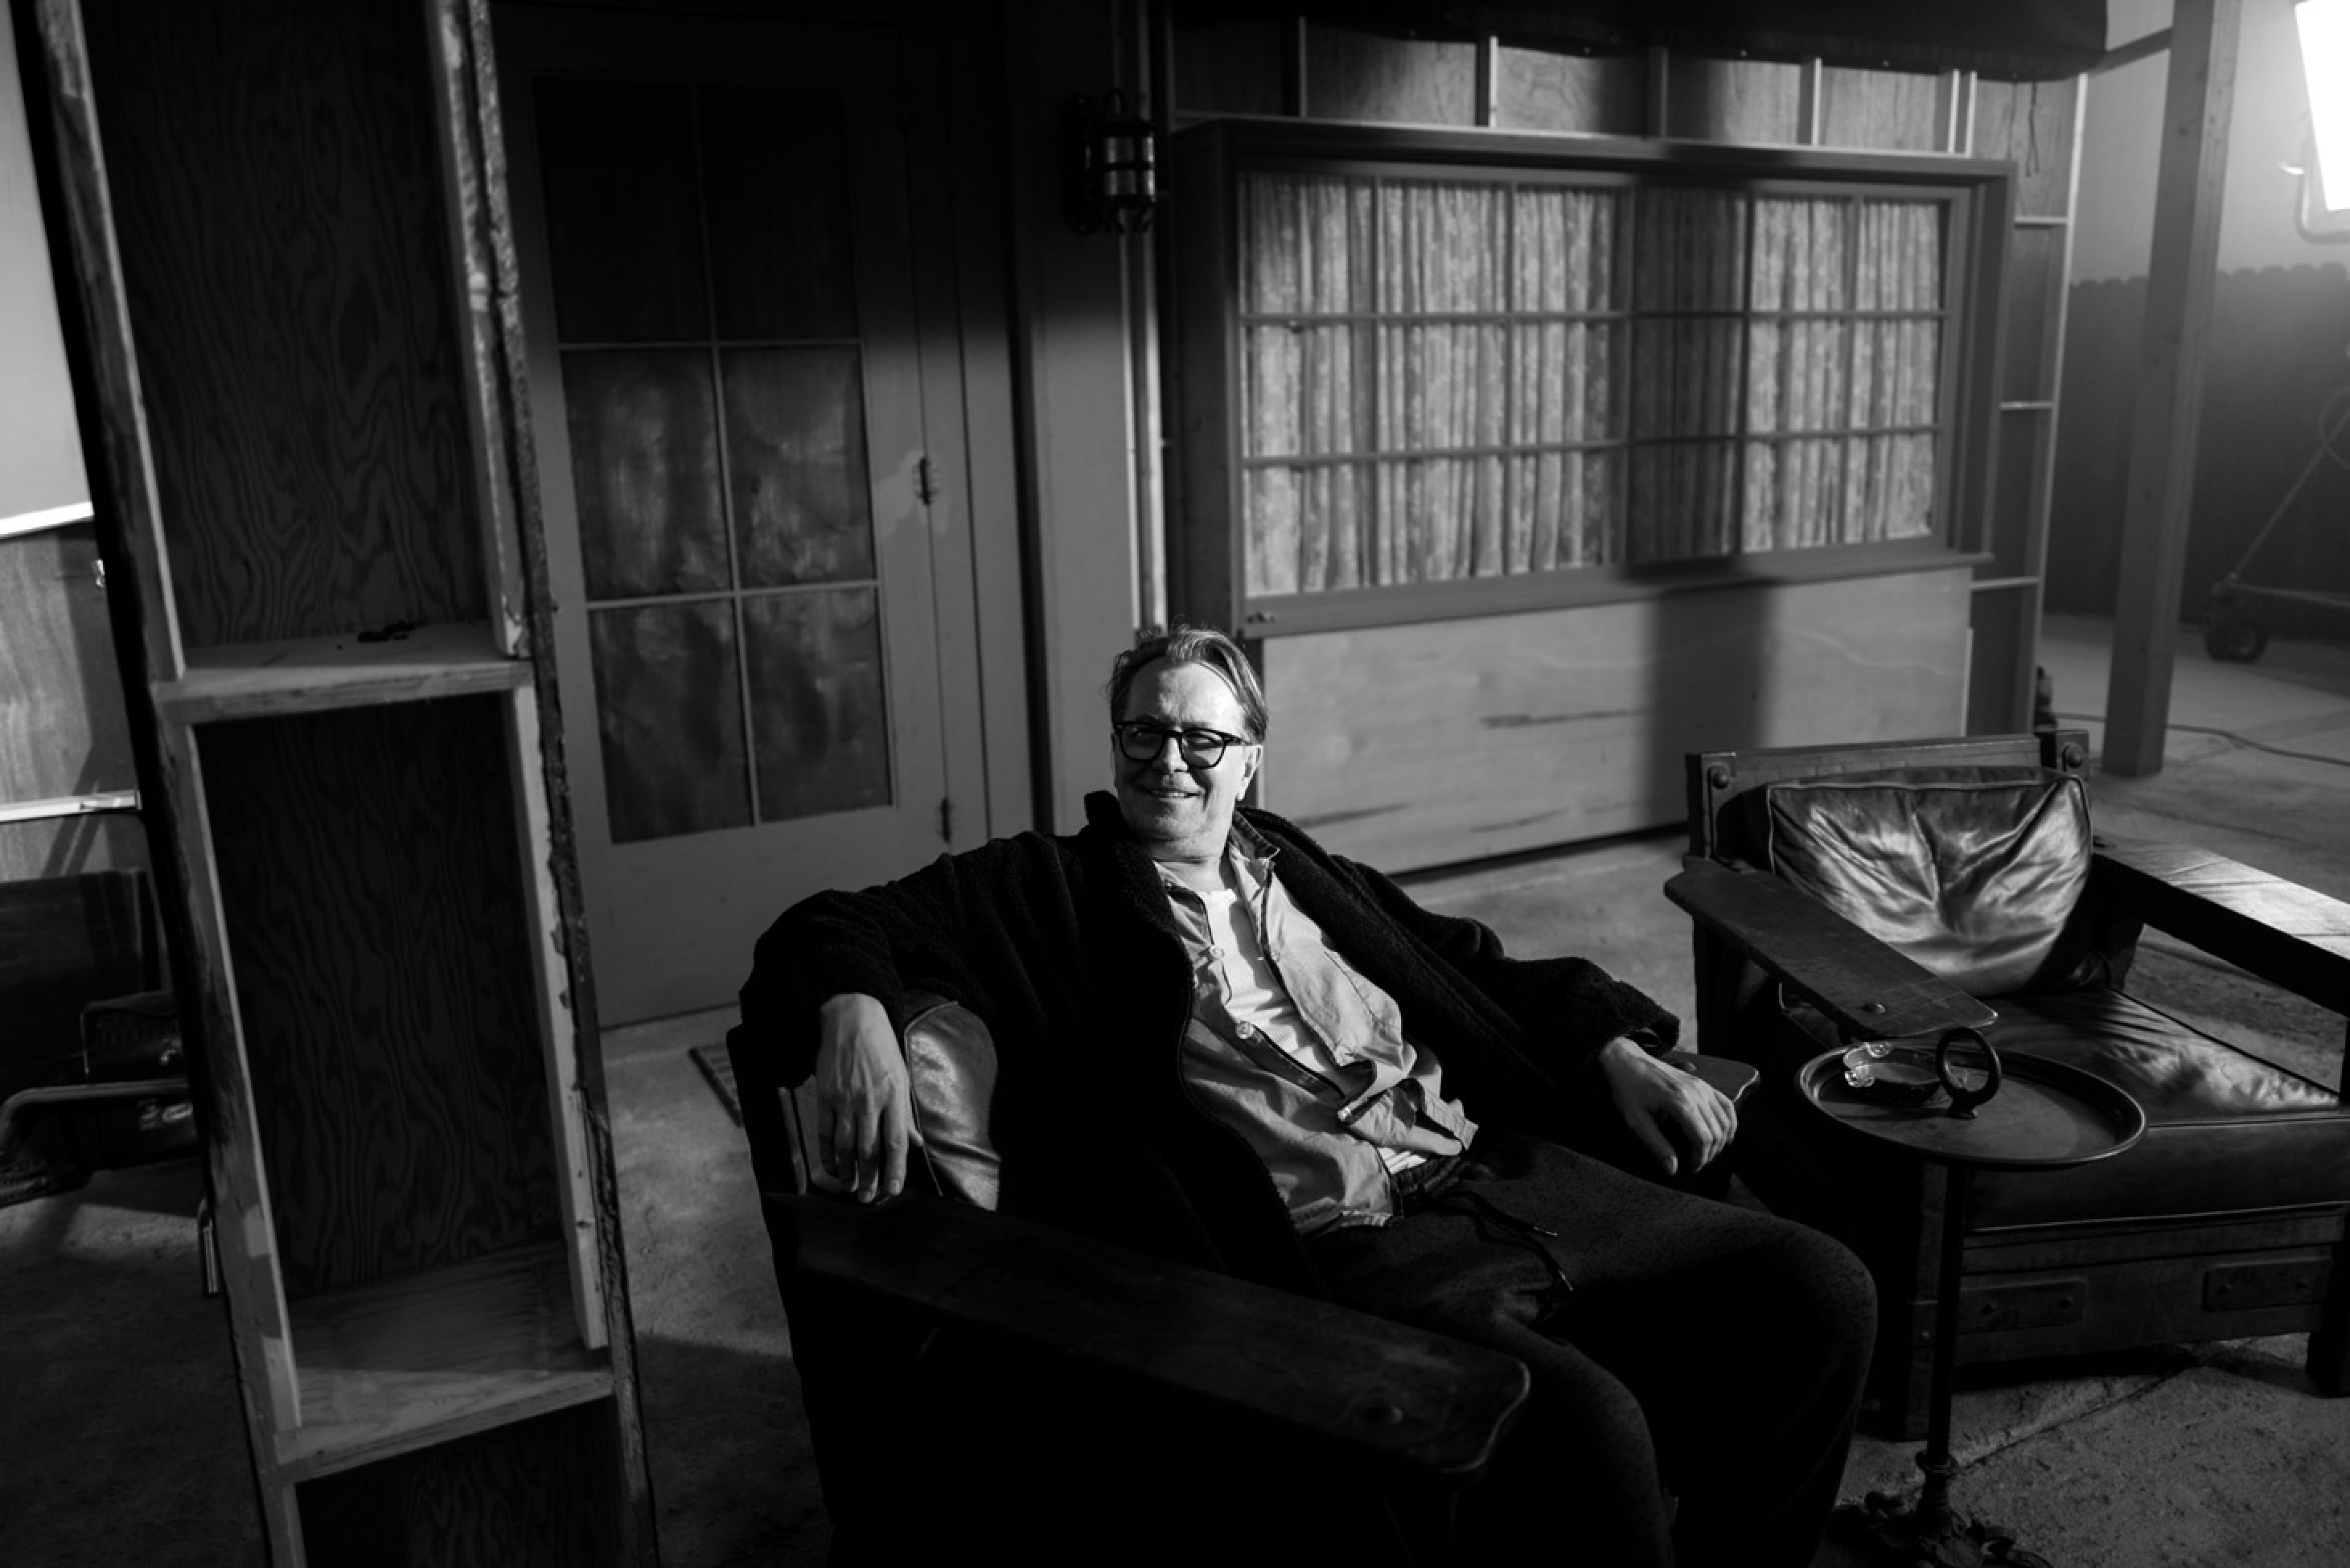 Oldman relaxes in a leather chair on one of the film's interior sets